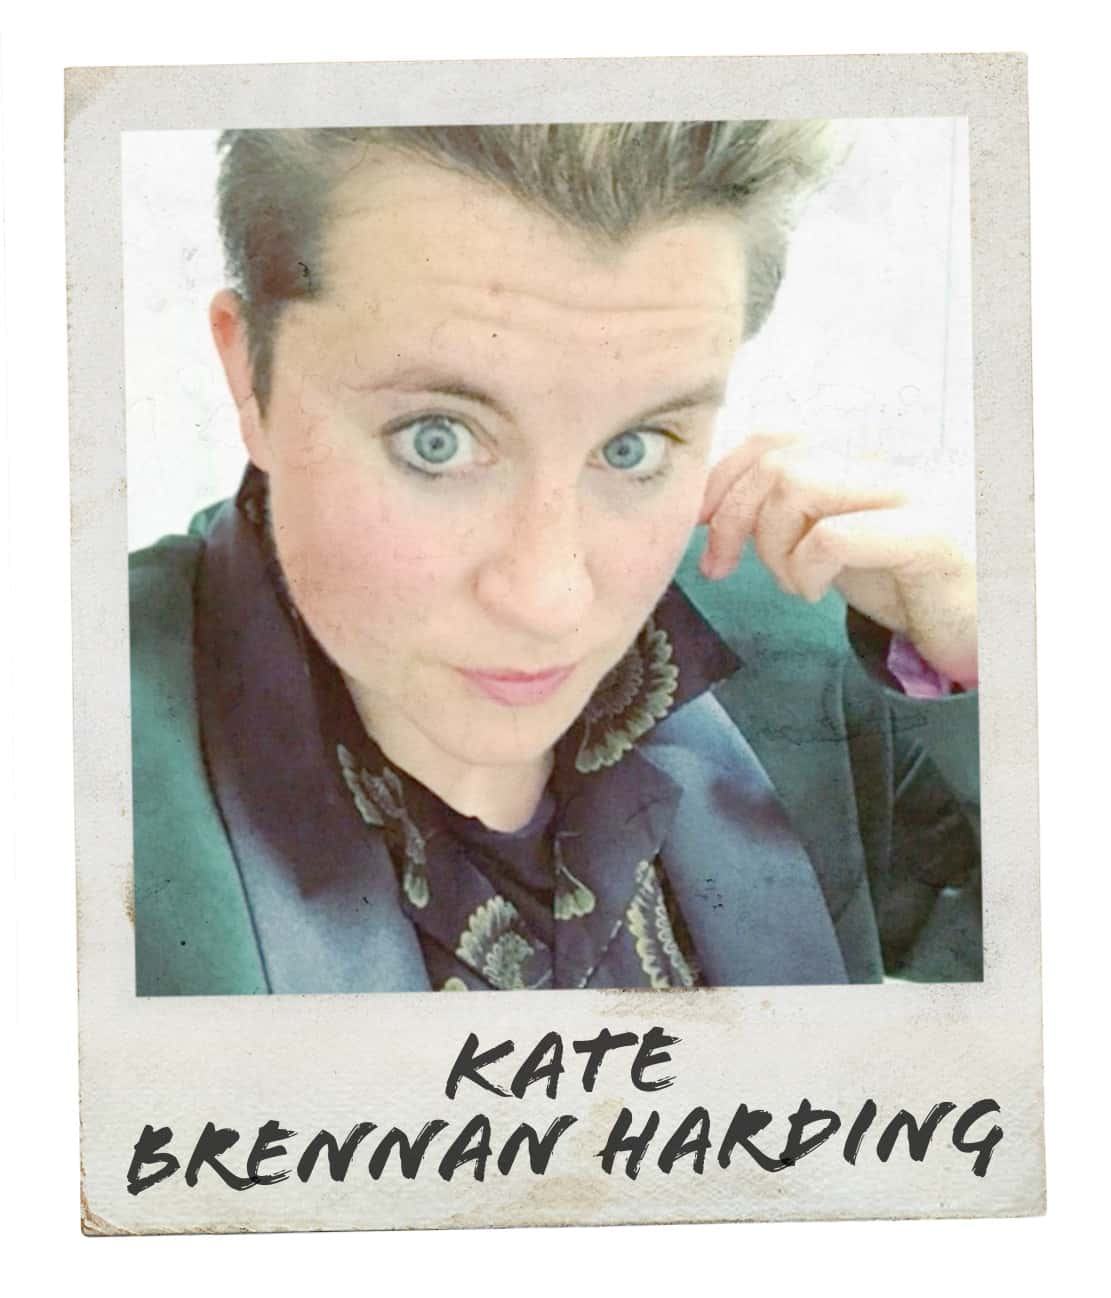 "Polaroid-style photo of blonde woman with short hair taking a selfie for #mygcn campaign. Under the photo the caption reads ""Kate Brennan Harding""."